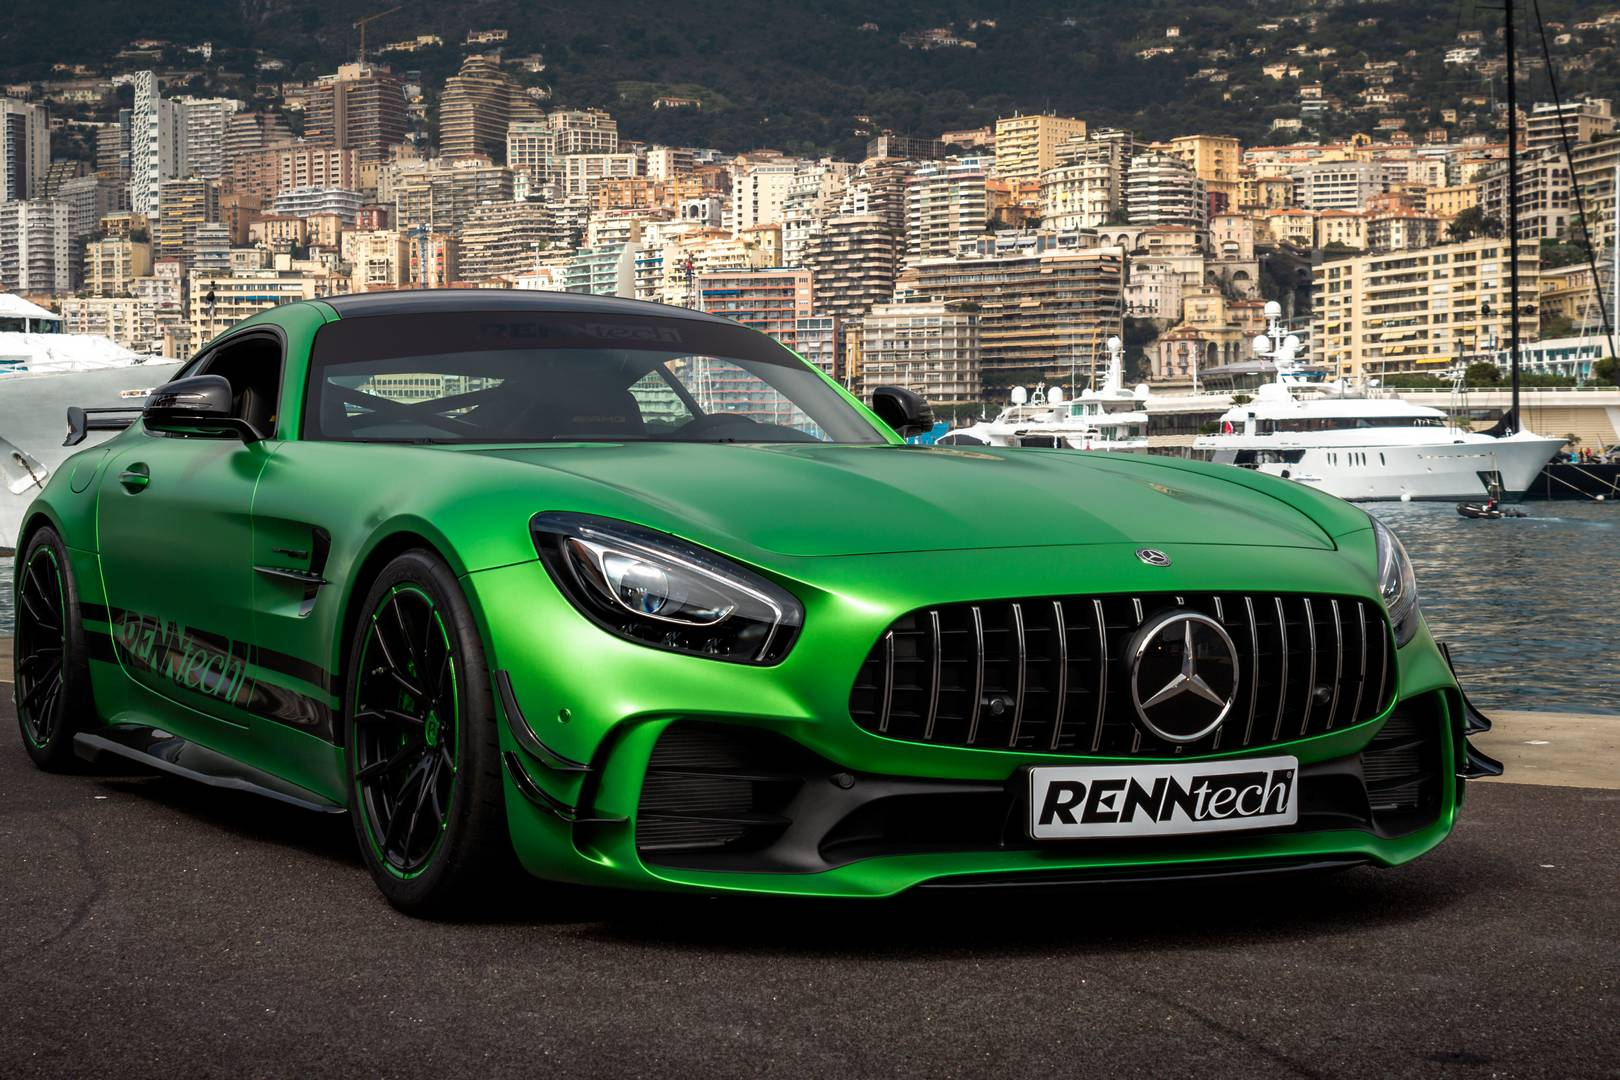 official 825hp renntech mercedes amg gt r gtspirit. Black Bedroom Furniture Sets. Home Design Ideas